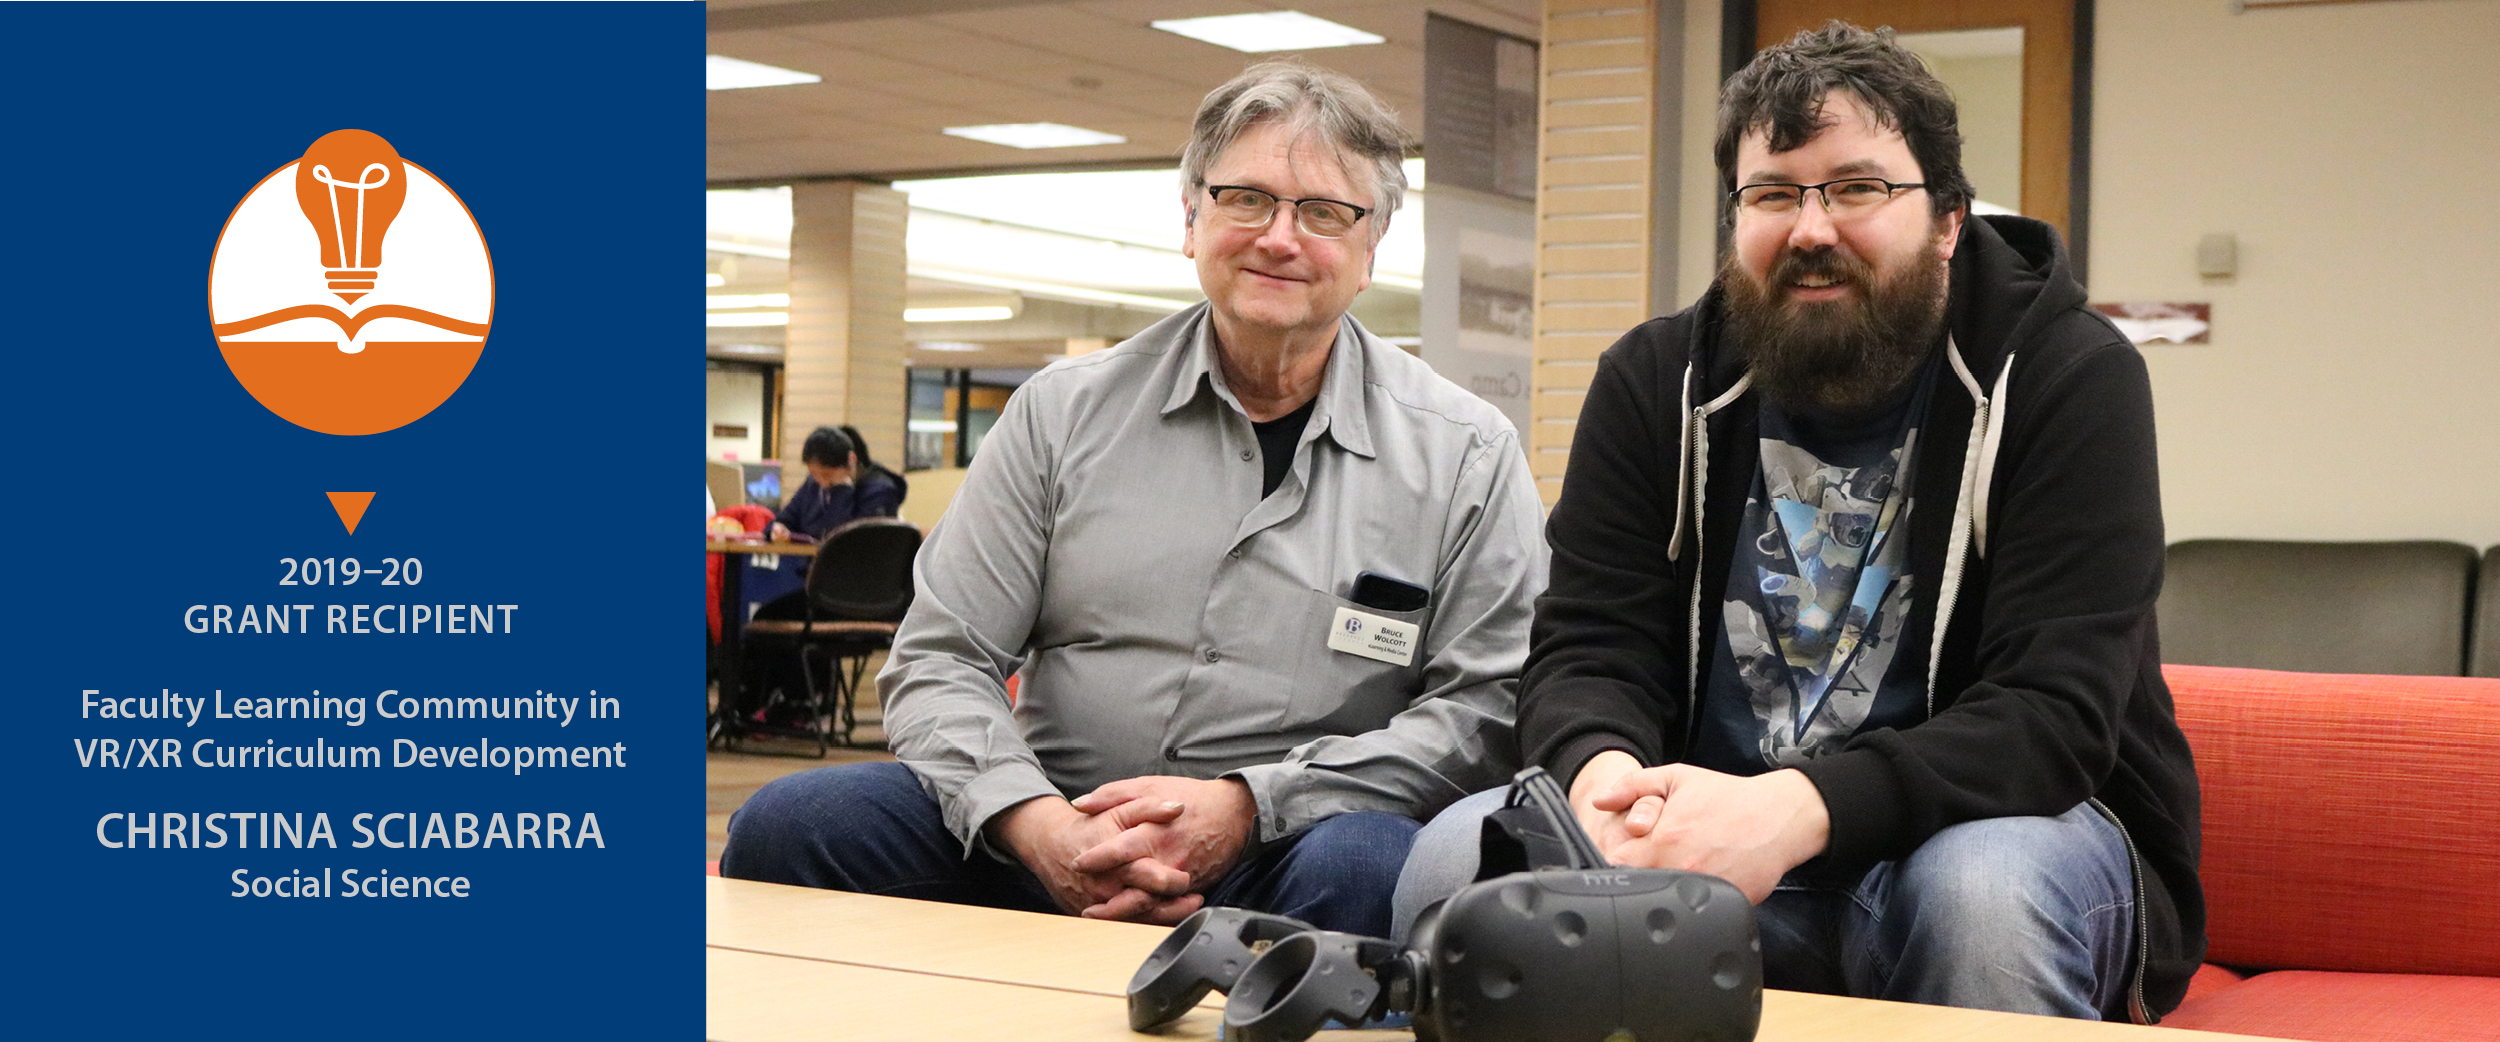 Bruce Wolcott and James Riggal sitting on a couch with VR/XR equipment on the table in front of them